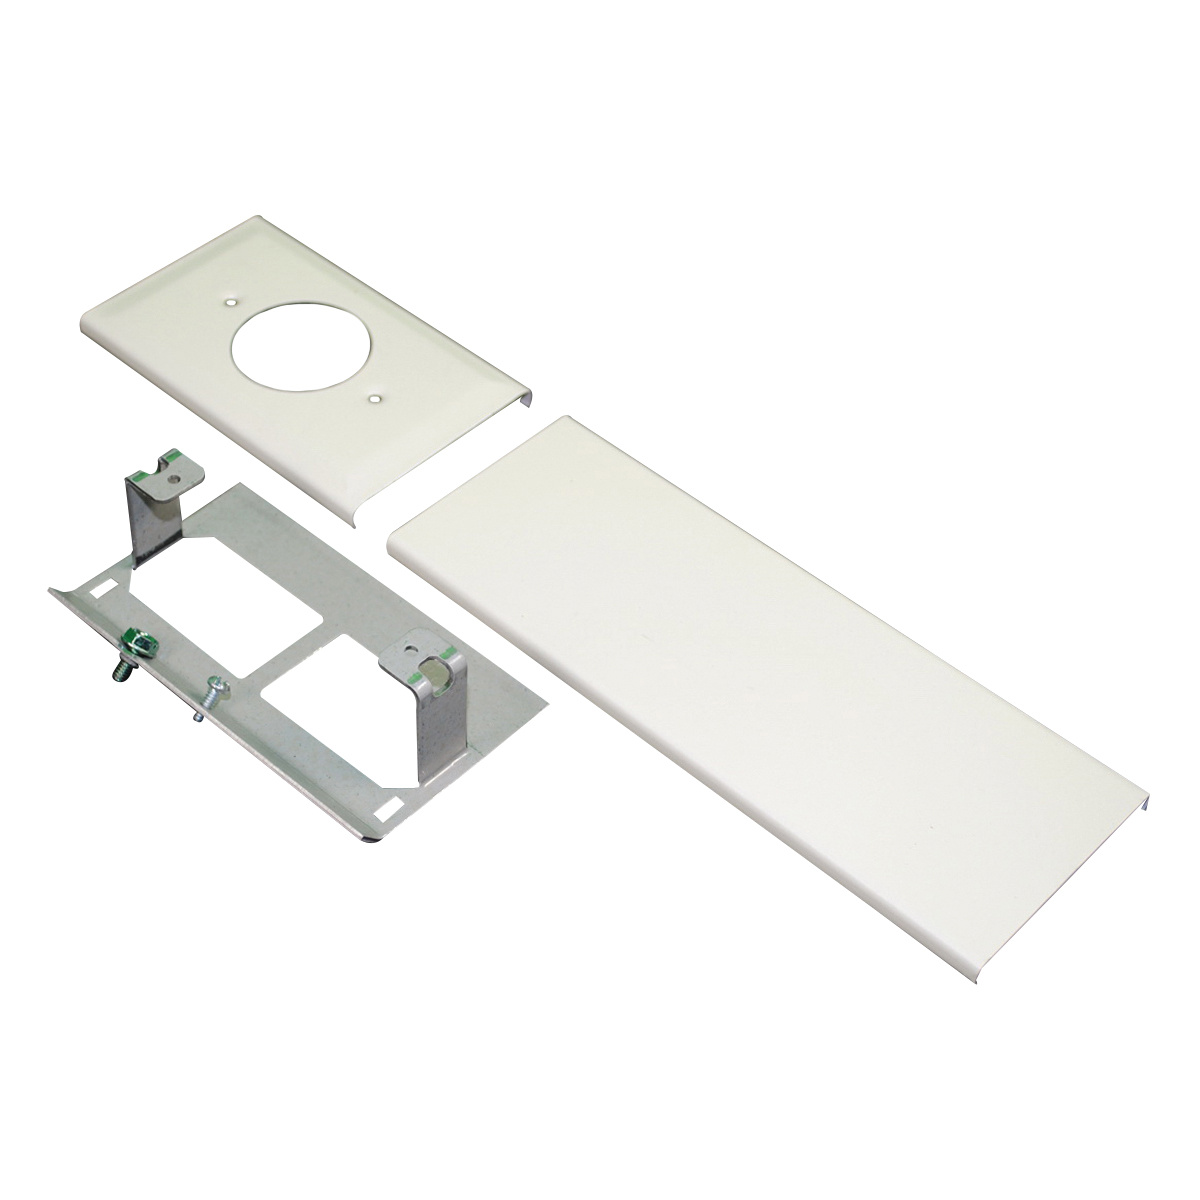 Wiremold 30tp A Single Receptacle Cover Steel Ivory Tele Power Conduit For Outdoor Wiring Powerreg